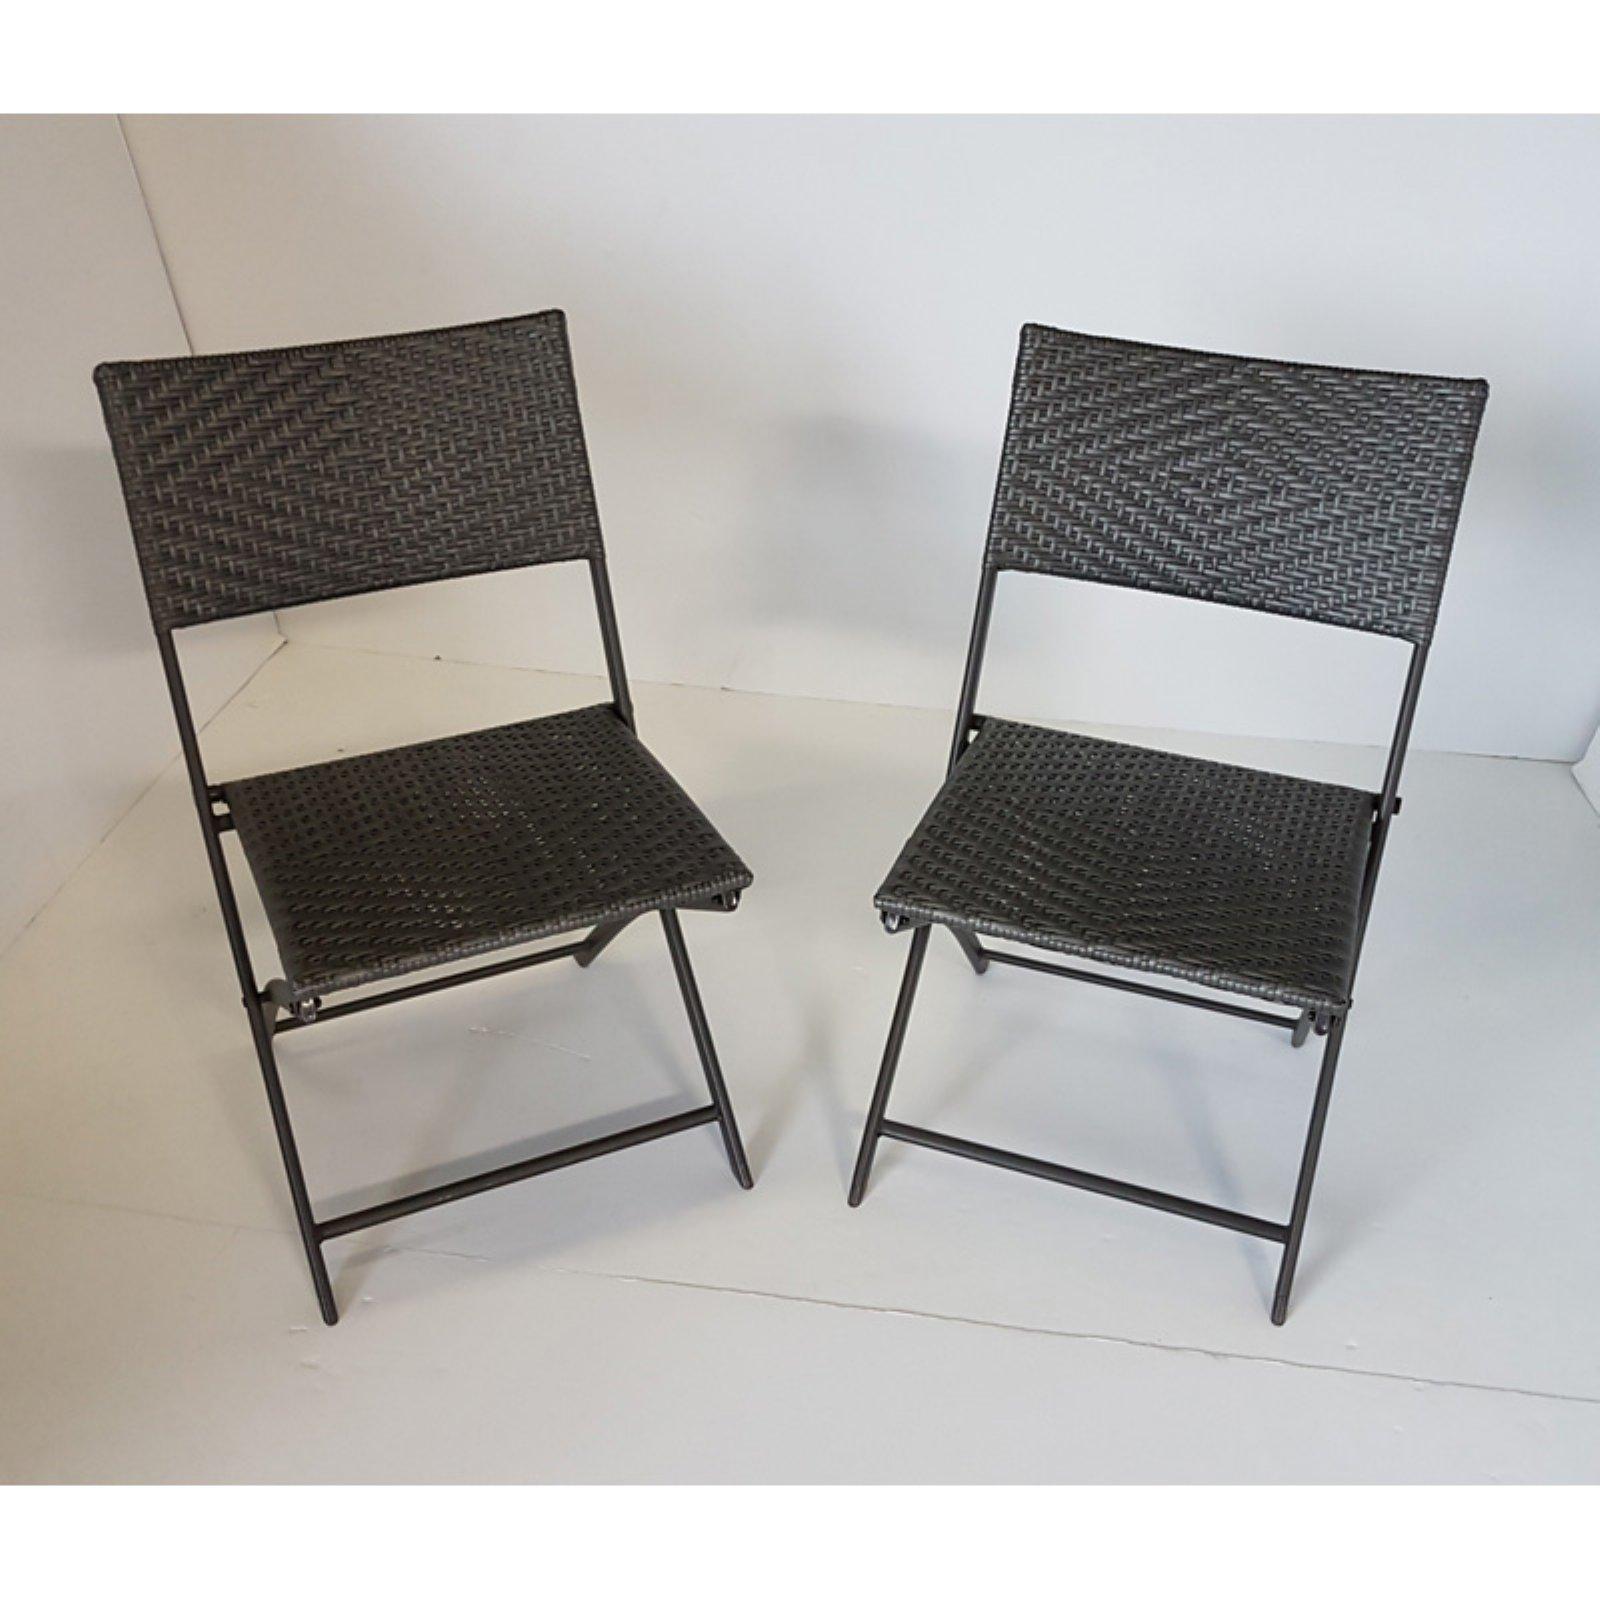 Foldable Patio Chairs Dura Housewares Marseille Rattan Folding Patio Chair Set Of 2